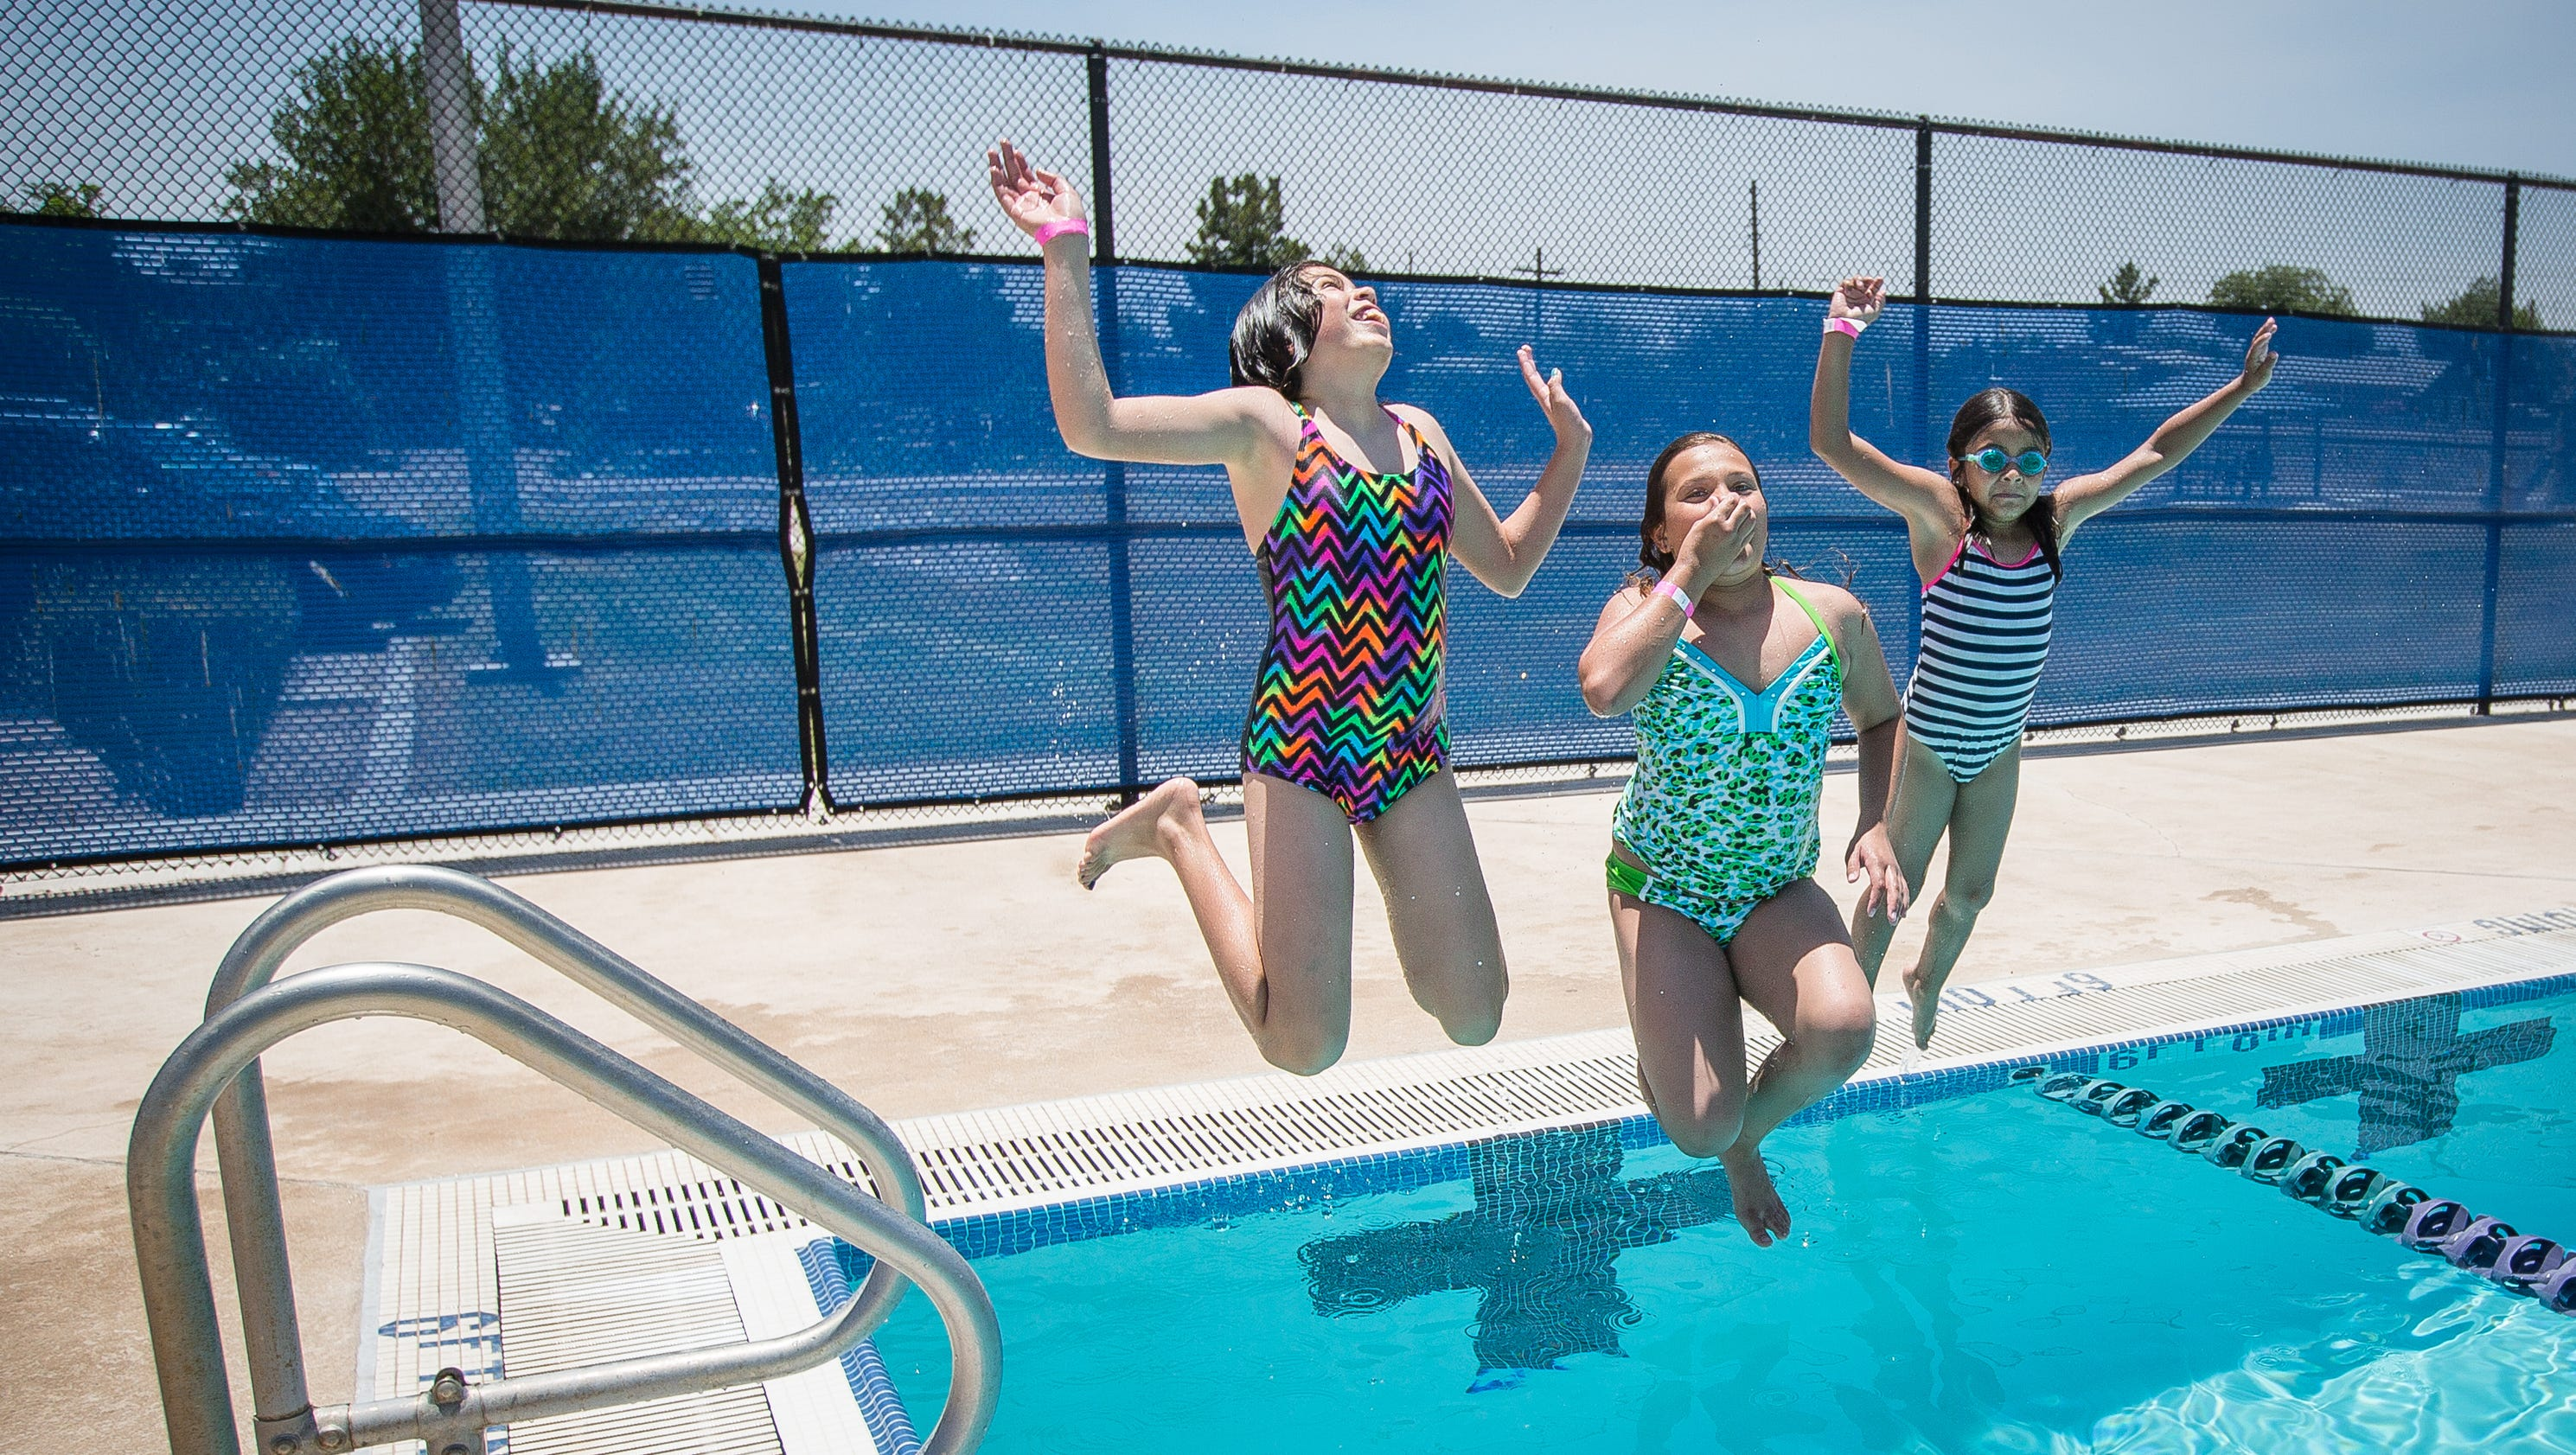 City Schedules Free Swim Days At Outdoor Pools